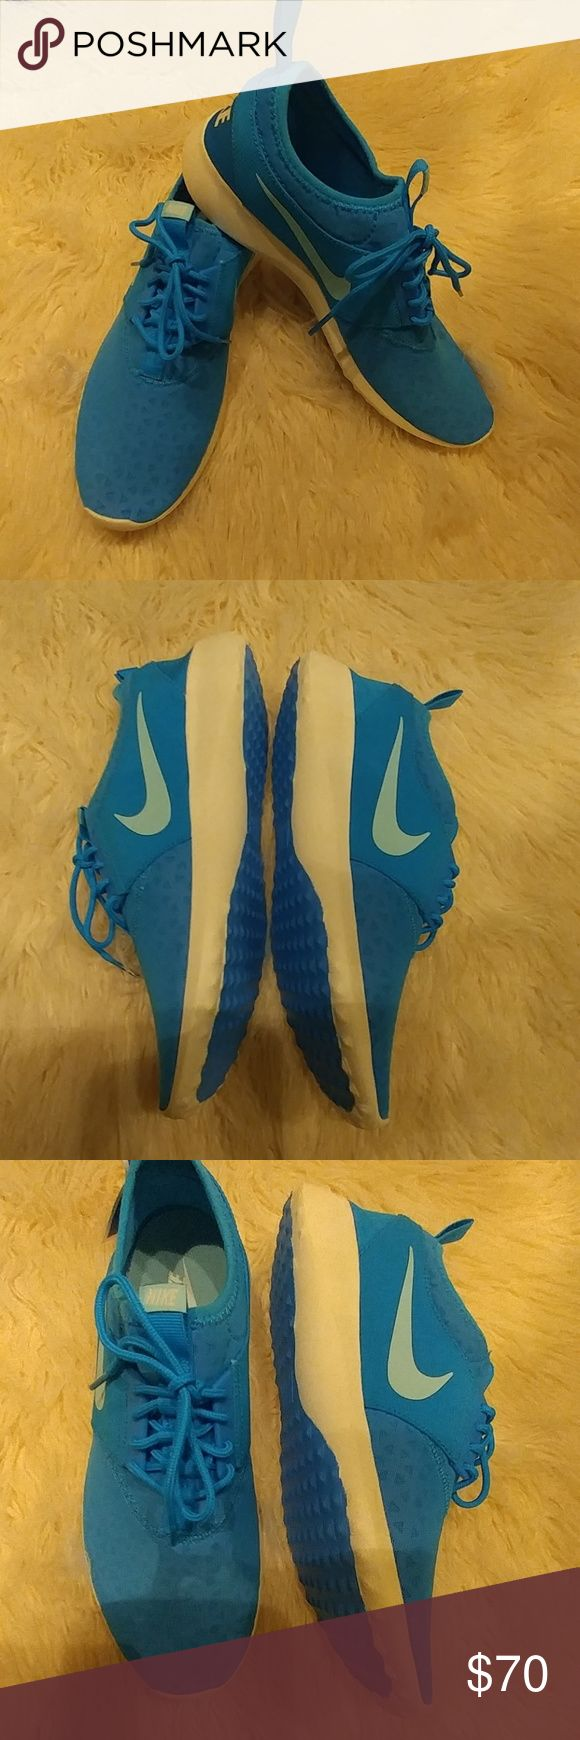 BRAND NEW NIKE WITHOUT BOX Perfect sneakers for the spring.  BRAND NEW NIKE WITHOUT BOX . Nike Shoes Sneakers